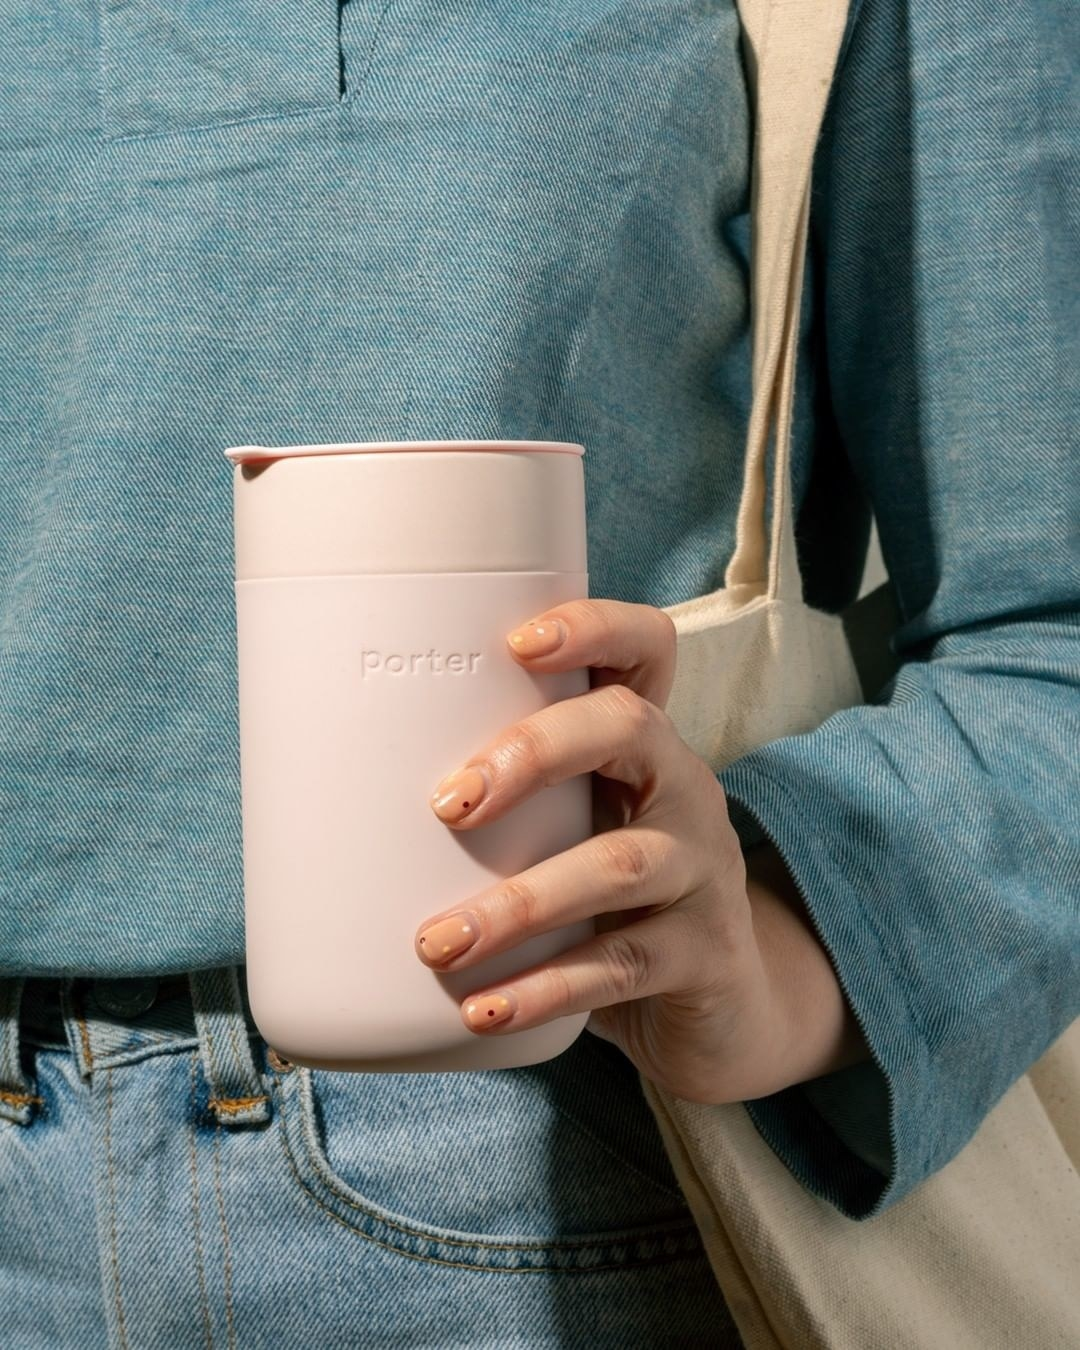 A person holding the tumbler in front of them